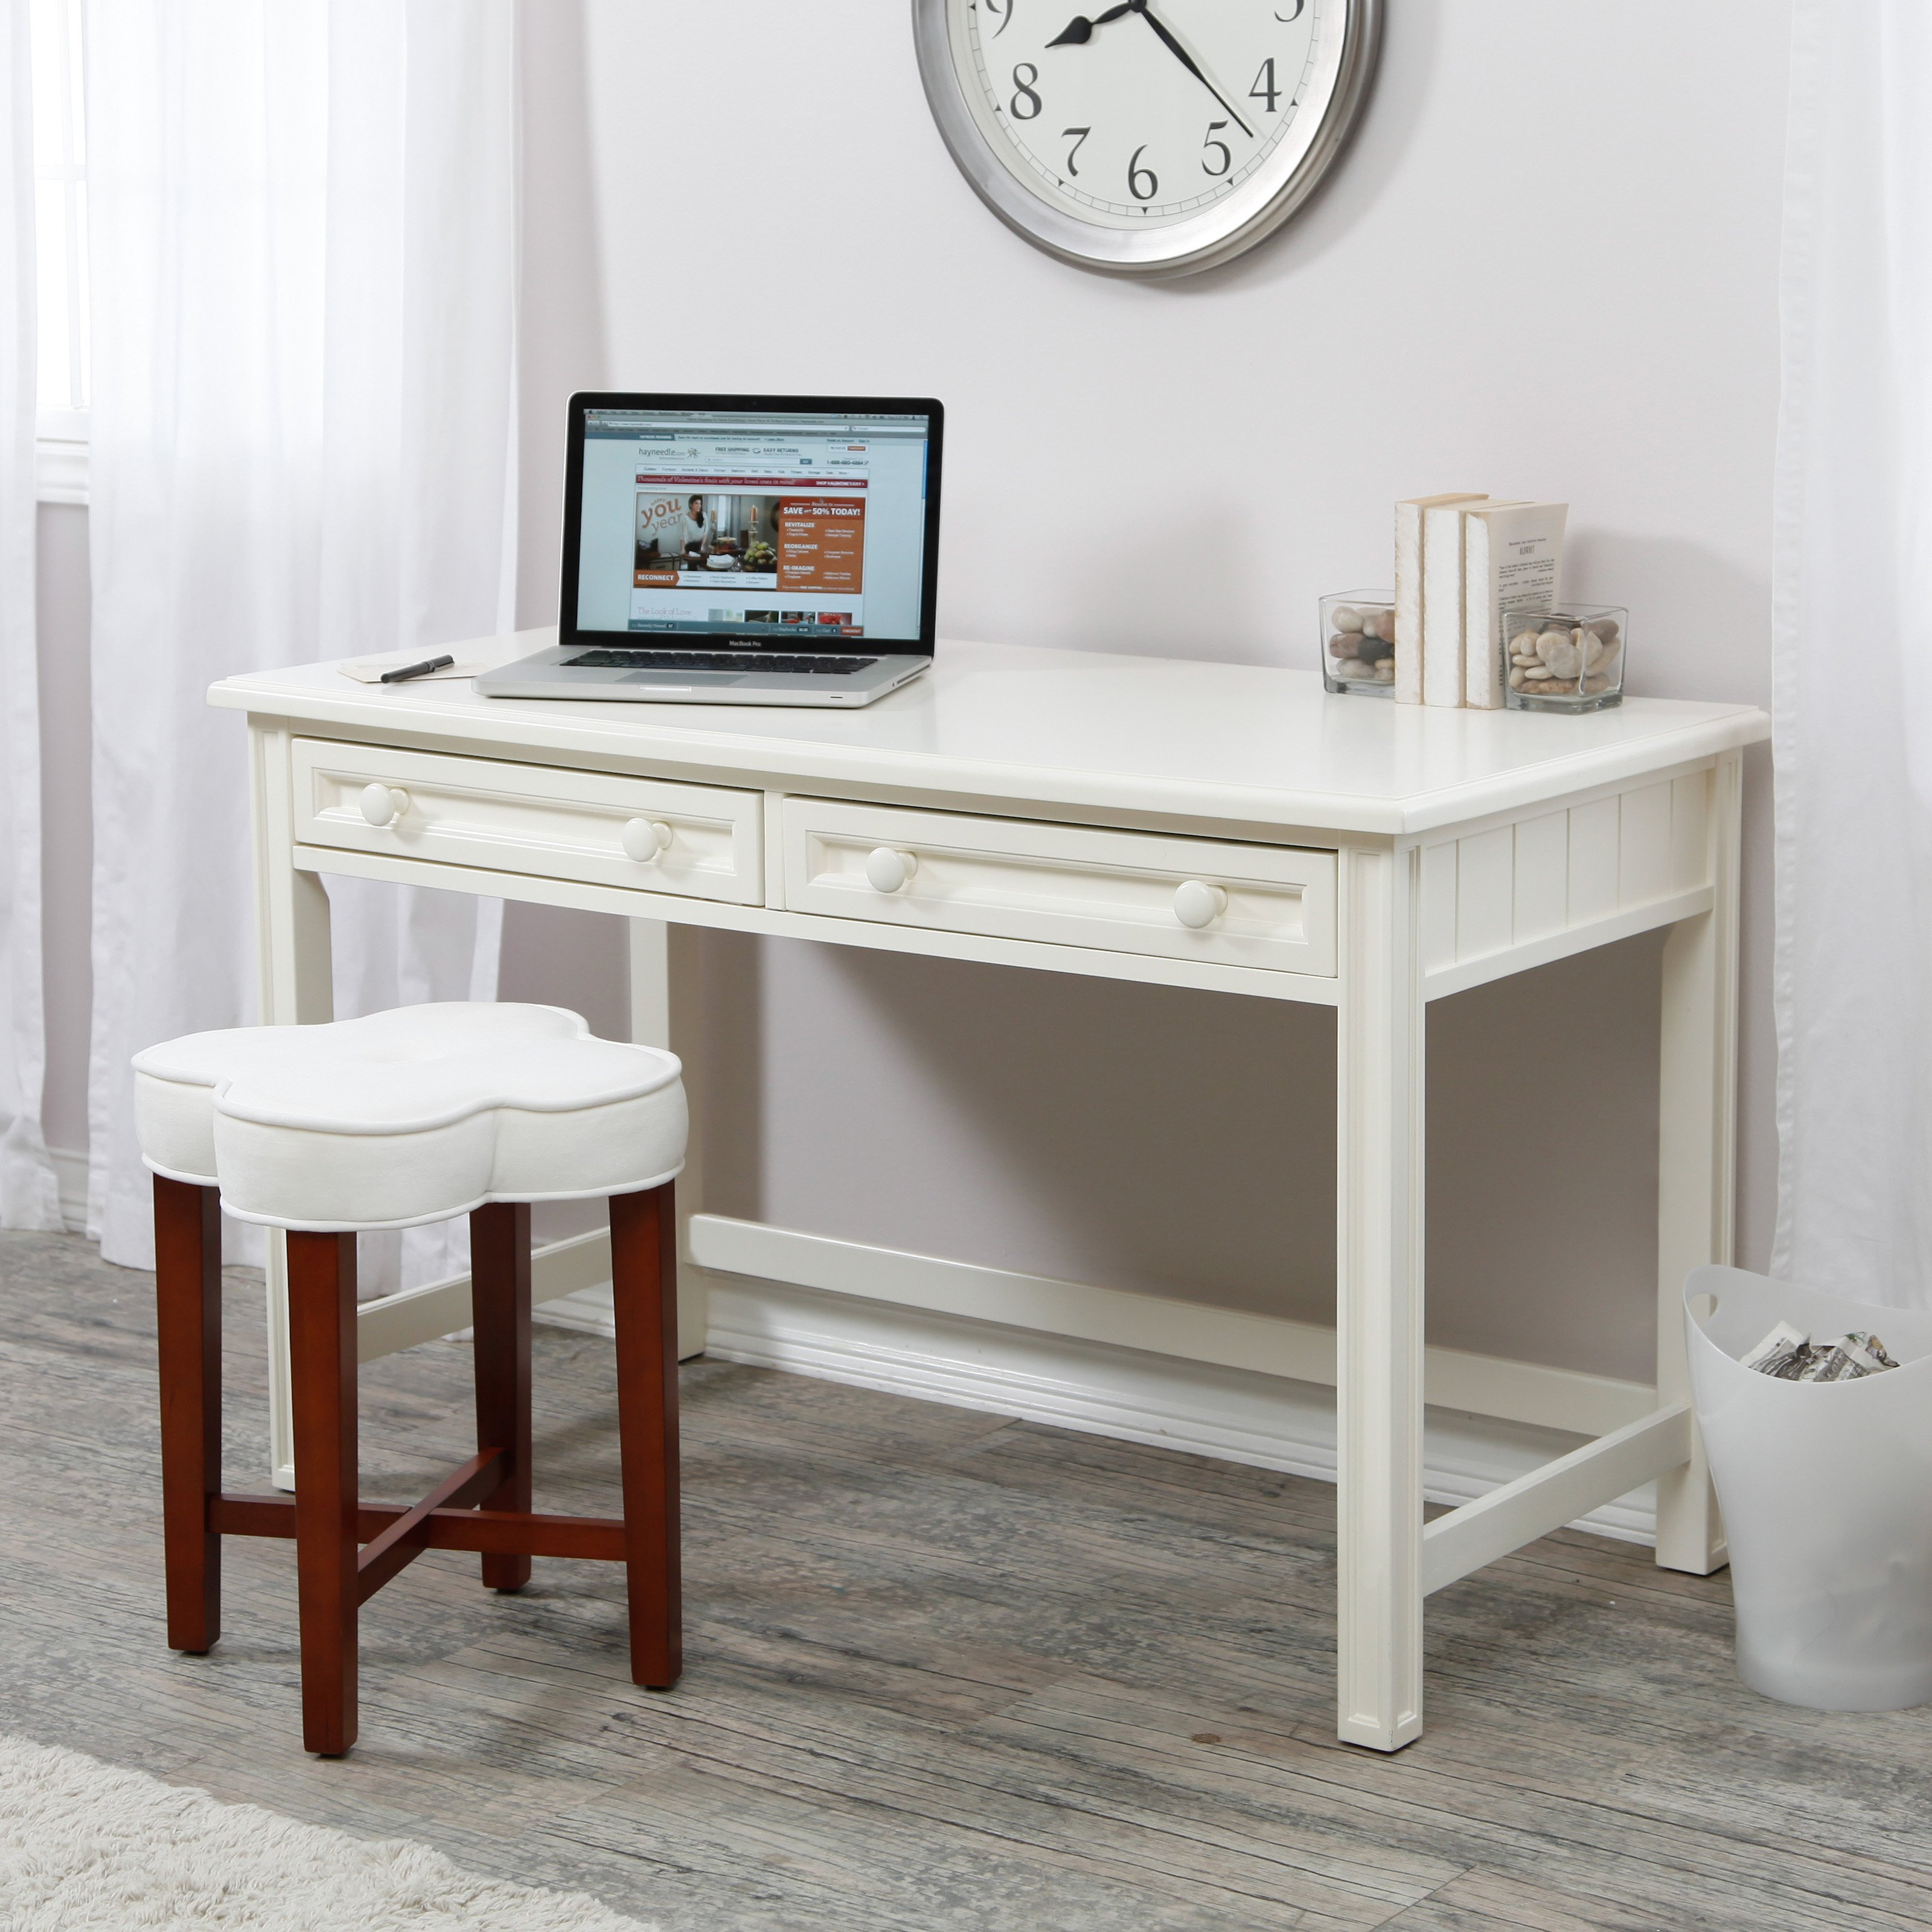 Belham Living Casey Writing Desk - White